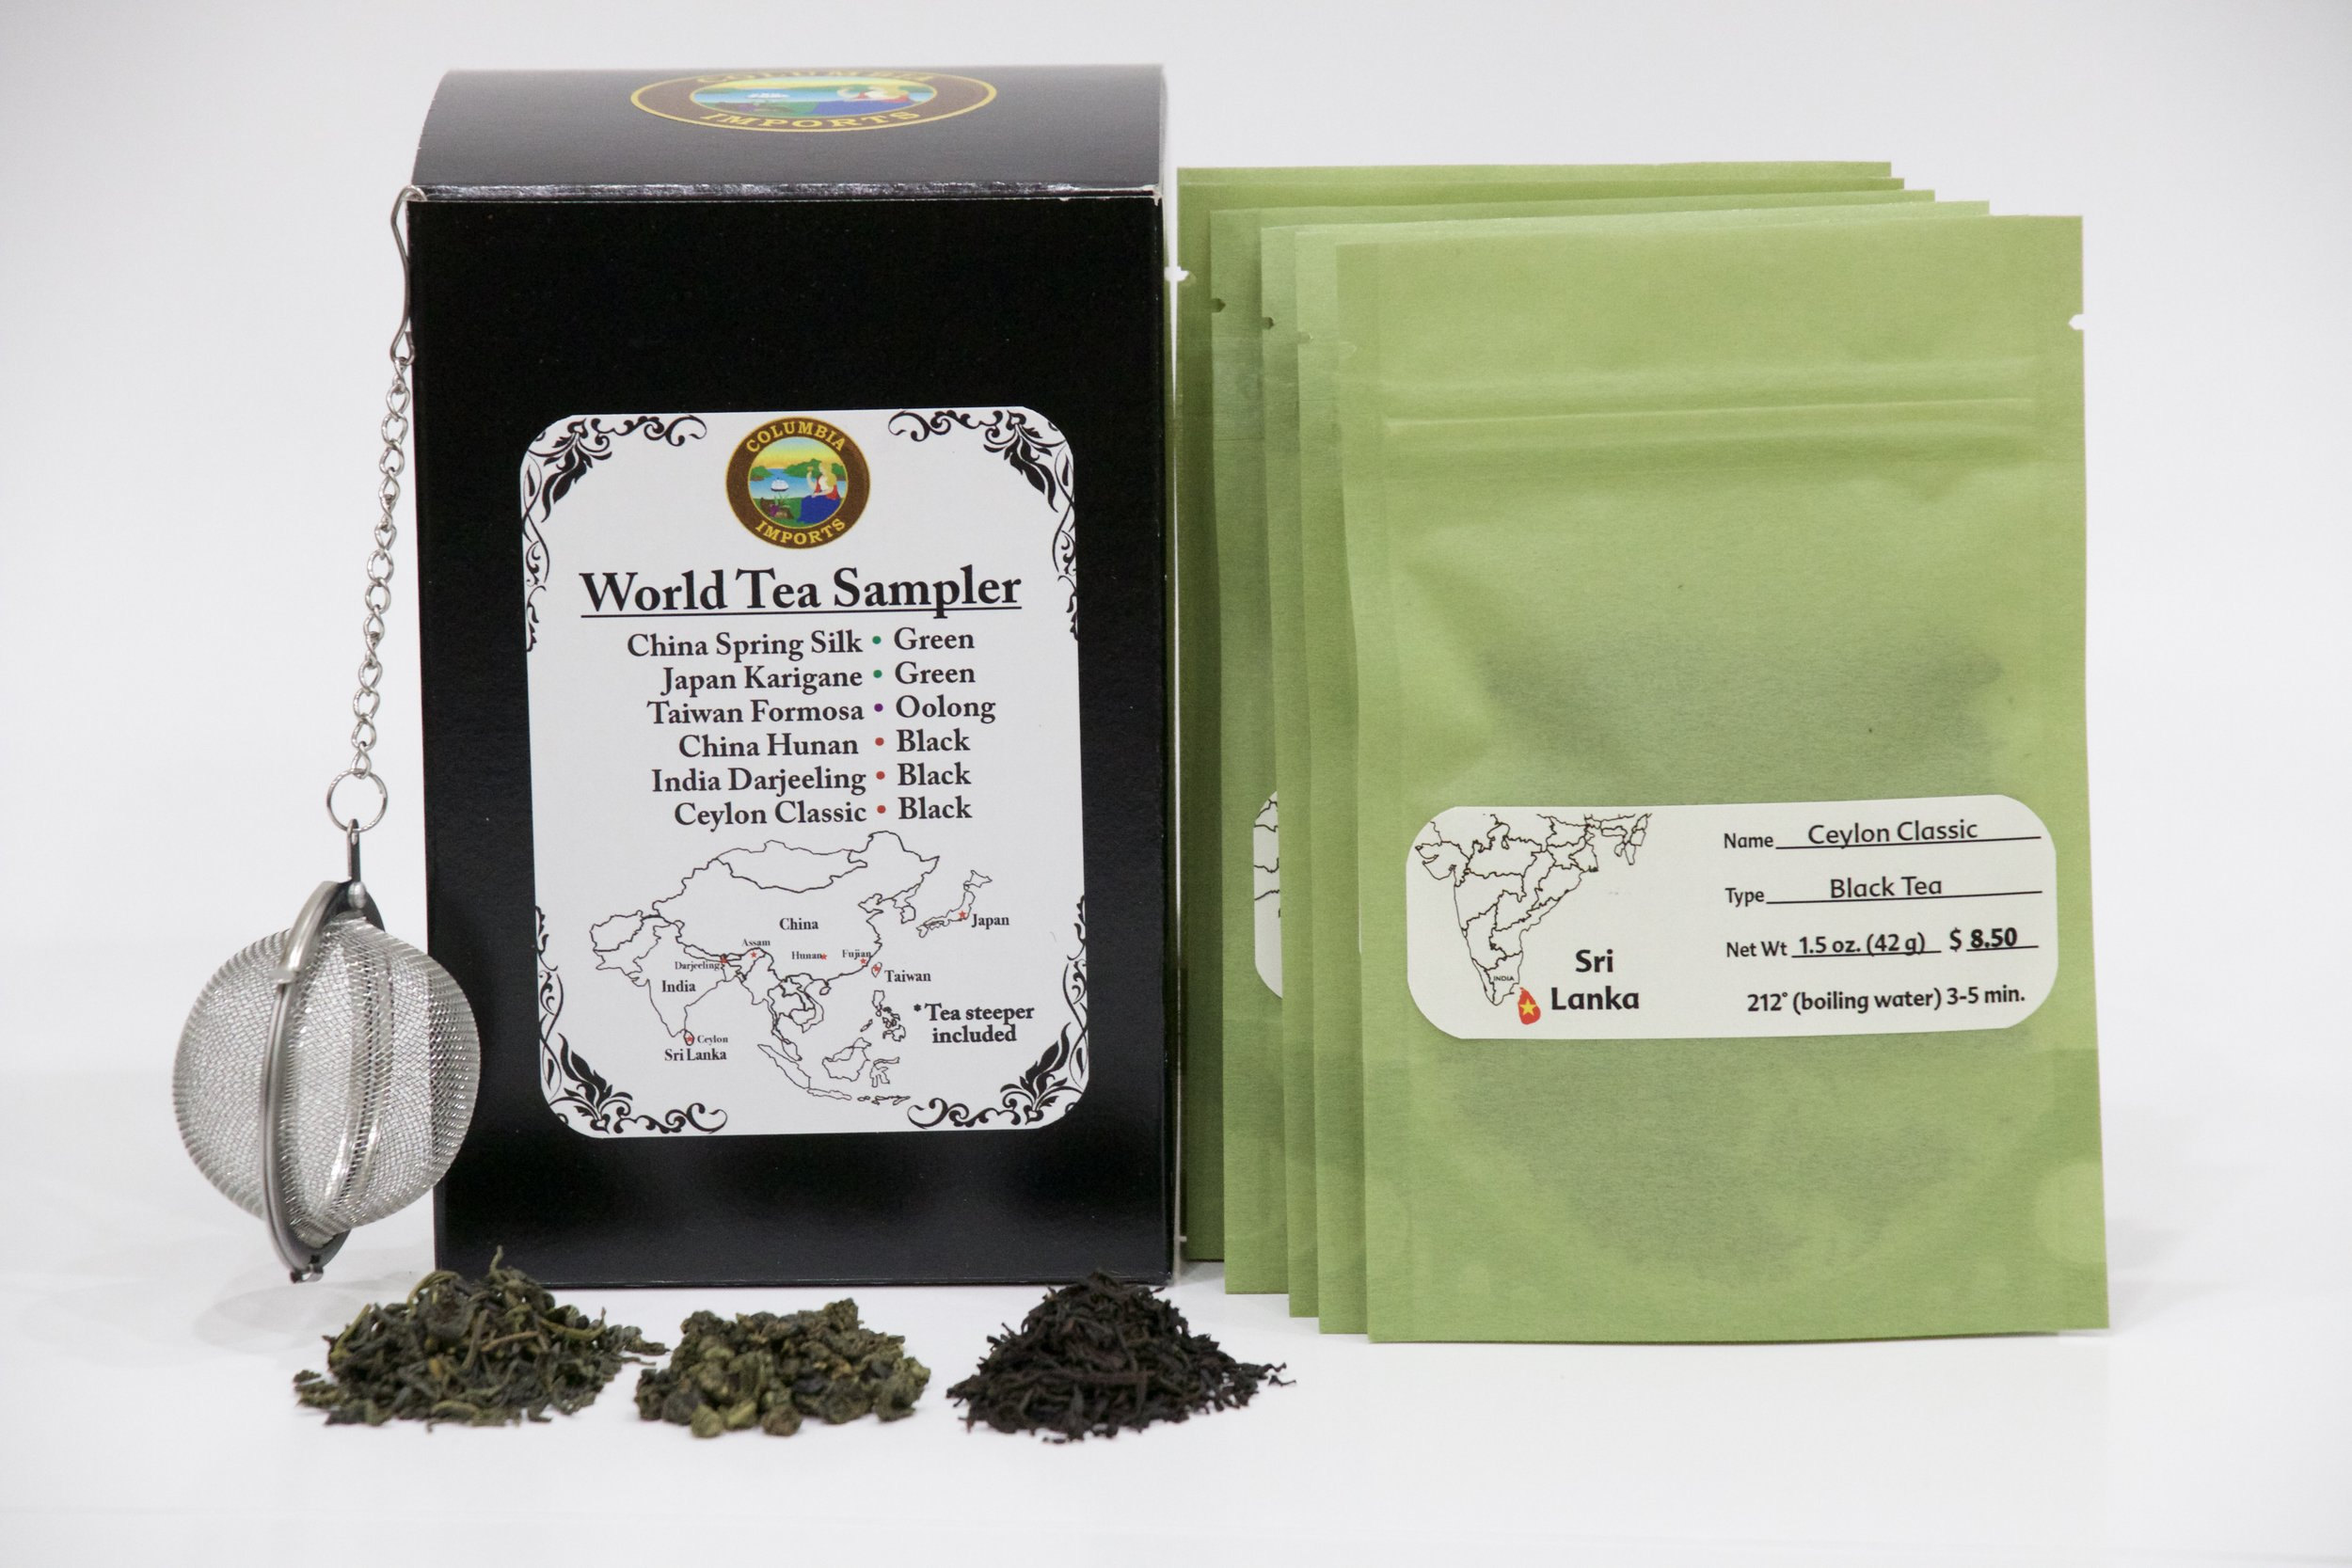 World Tea Sampler